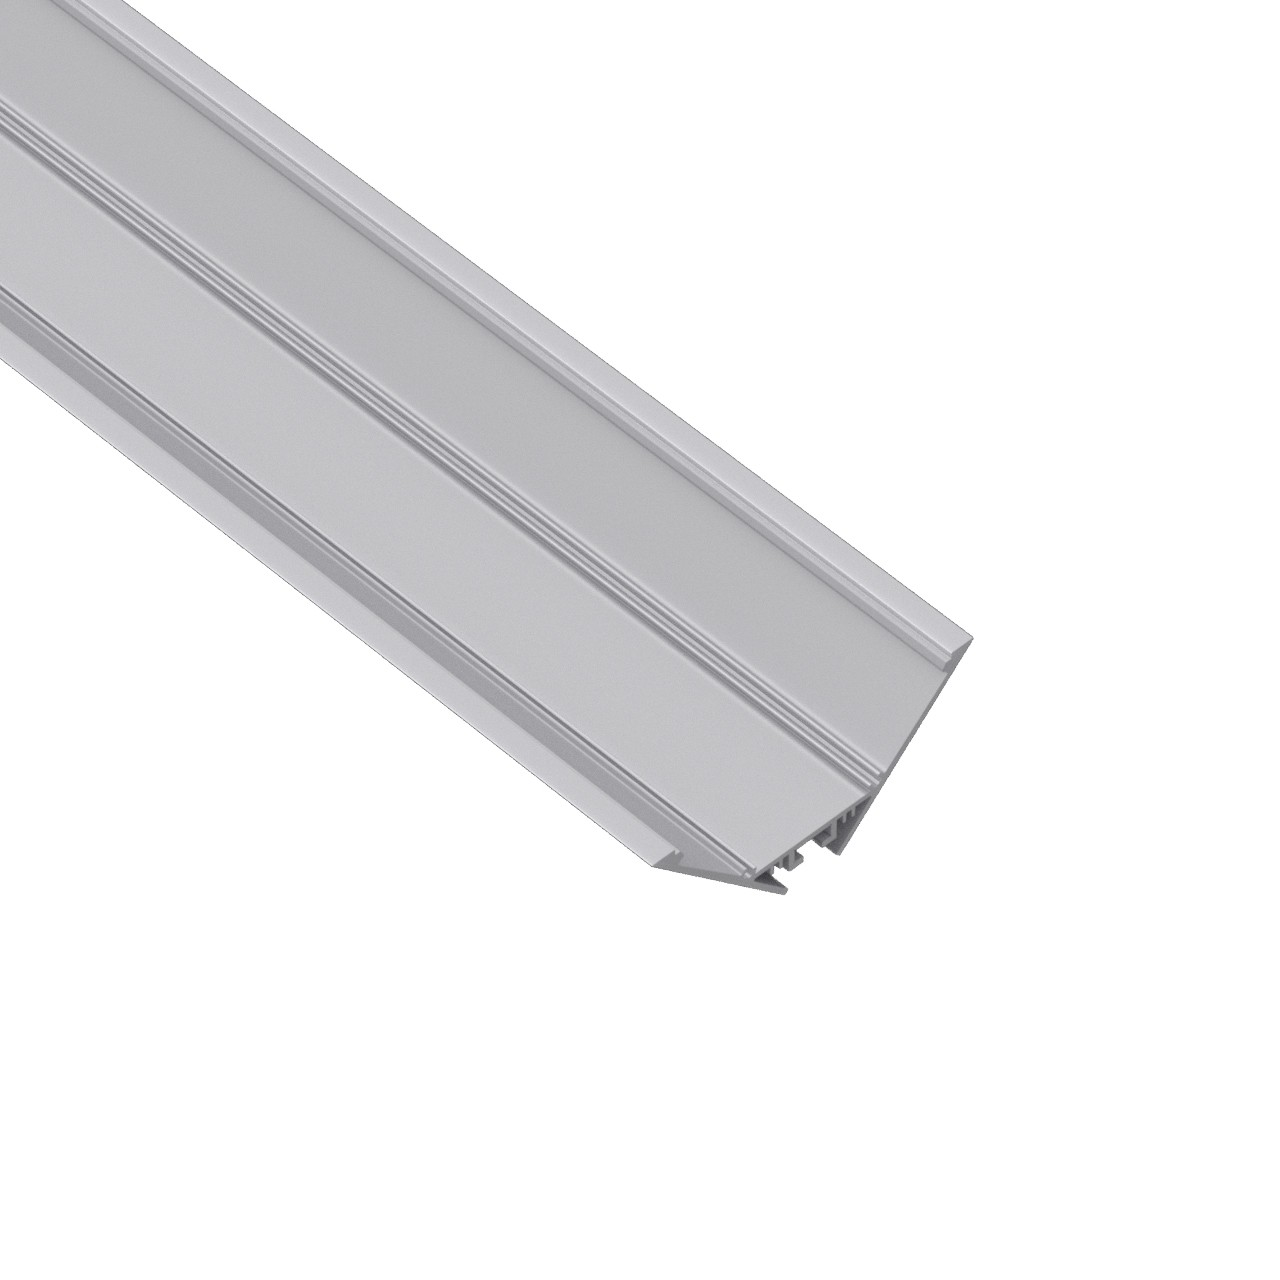 W91 Big corner and suspended lighting profile 90x37.5mm